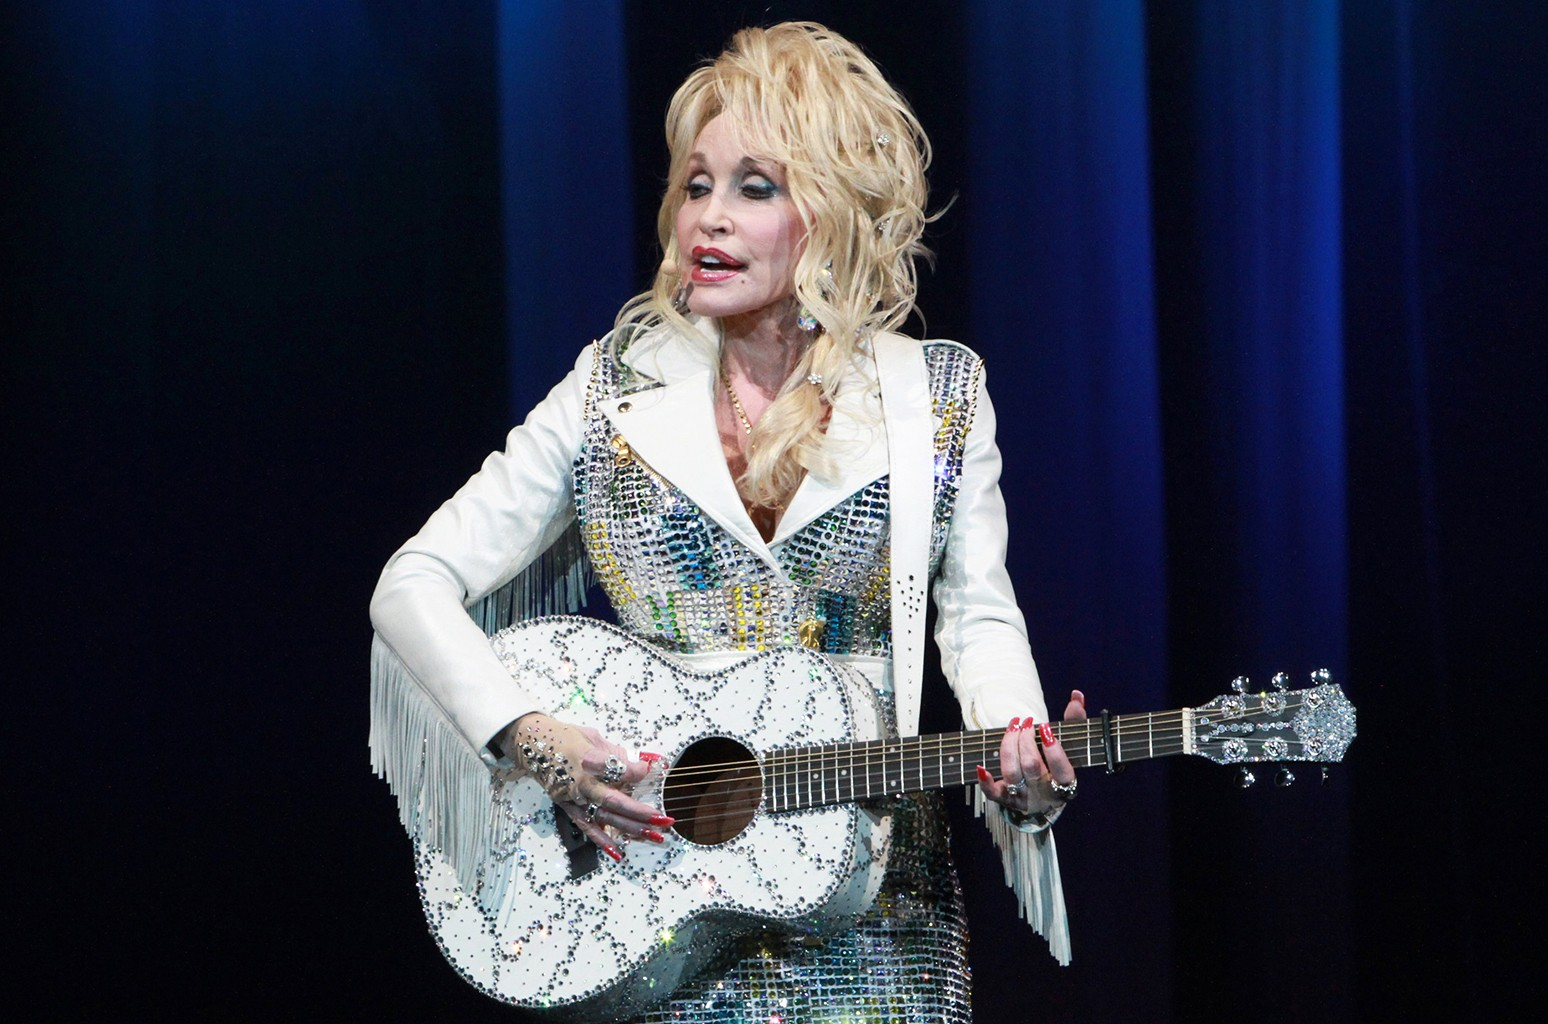 Dolly Parton performs at Infinite Energy Arena